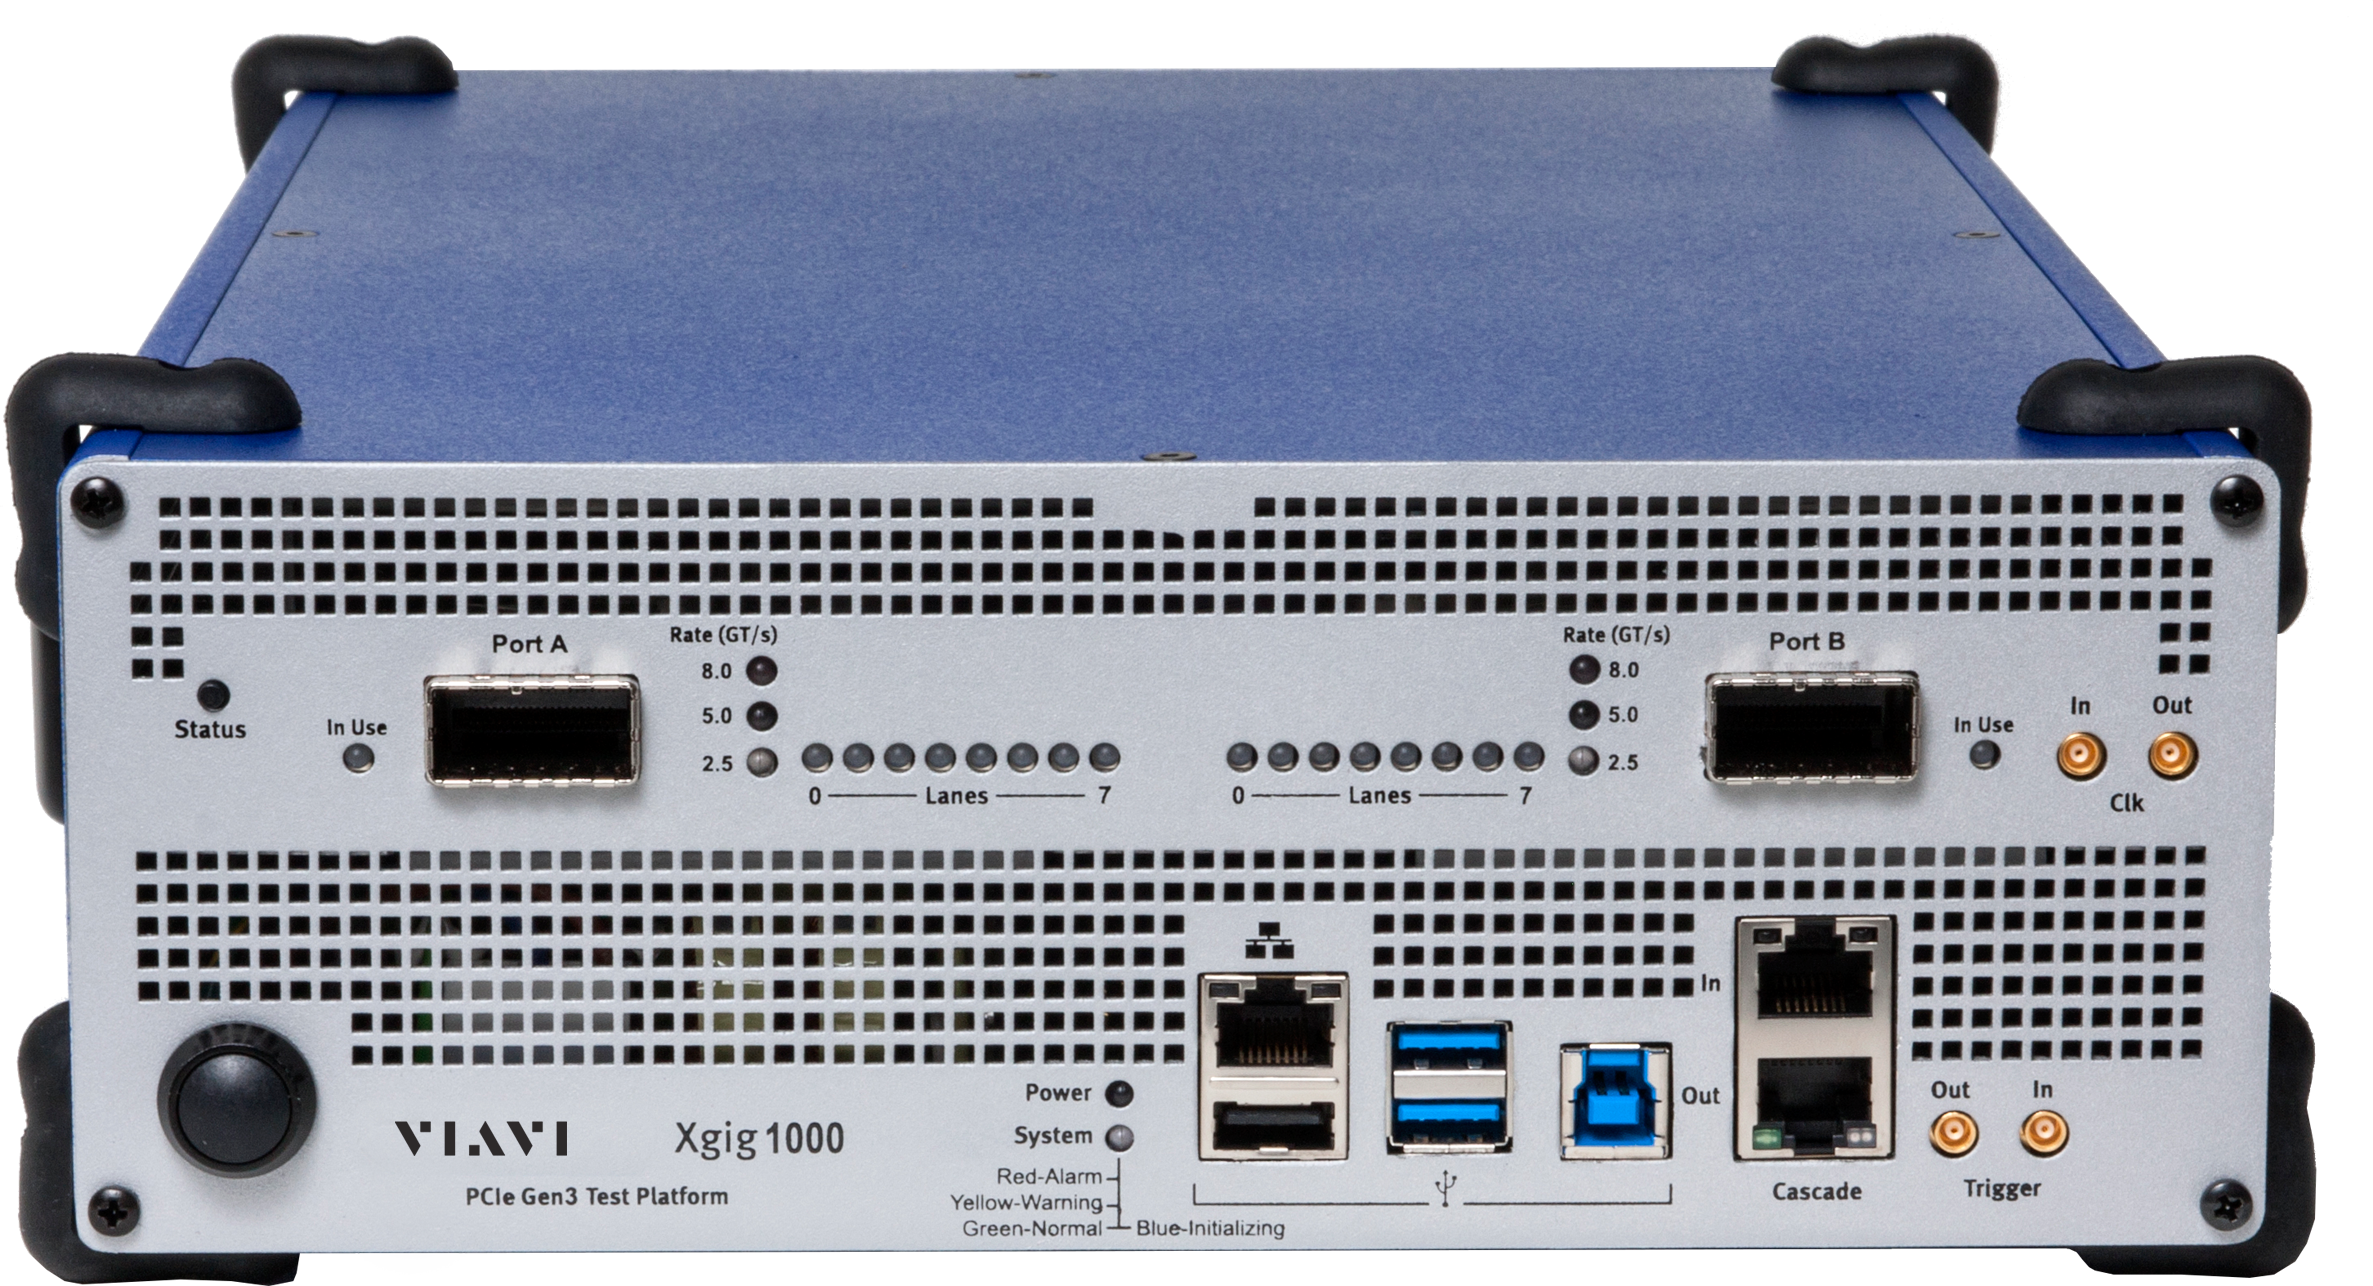 Xgig 1000 PCIe and NVMe Analysis System | VIAVI Solutions Inc